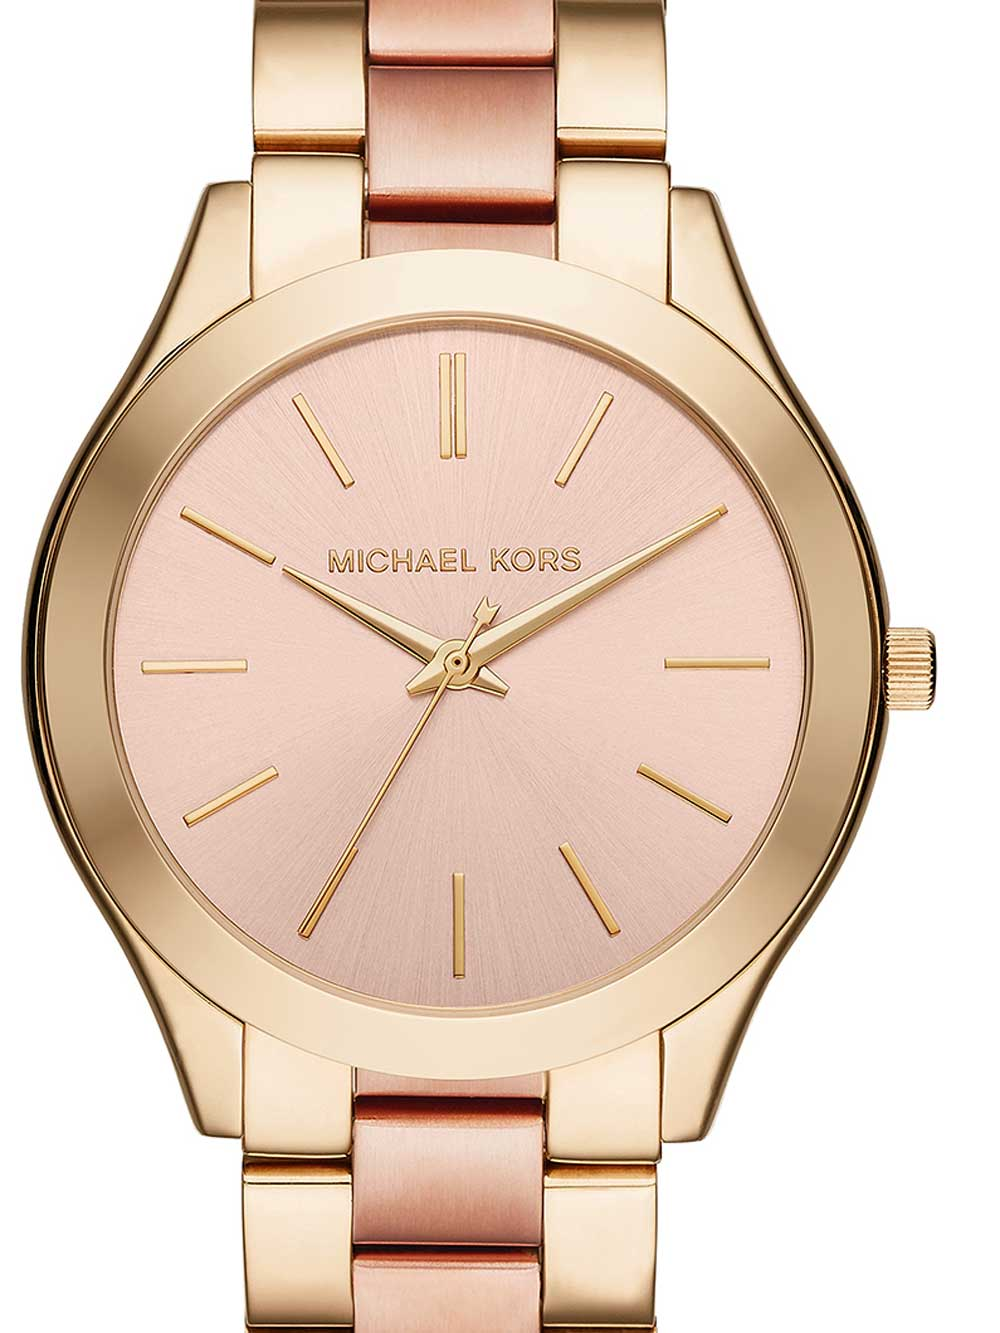 Michael Kors MK3493 Runway Damen 40mm 5ATM